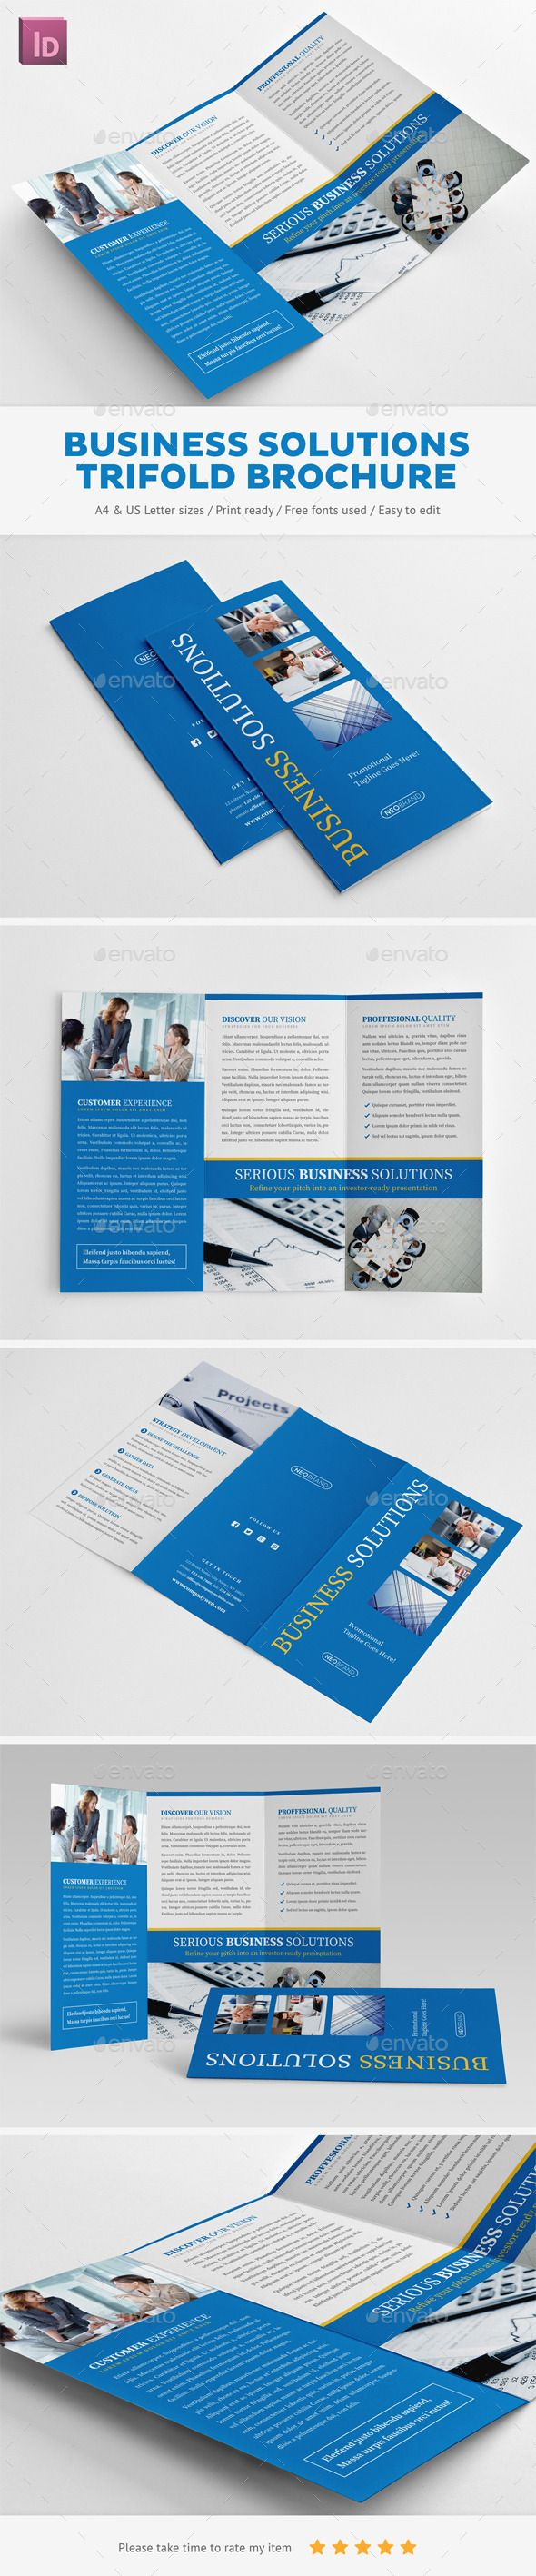 Business Solutions Trifold Brochure  Brochures Corporate